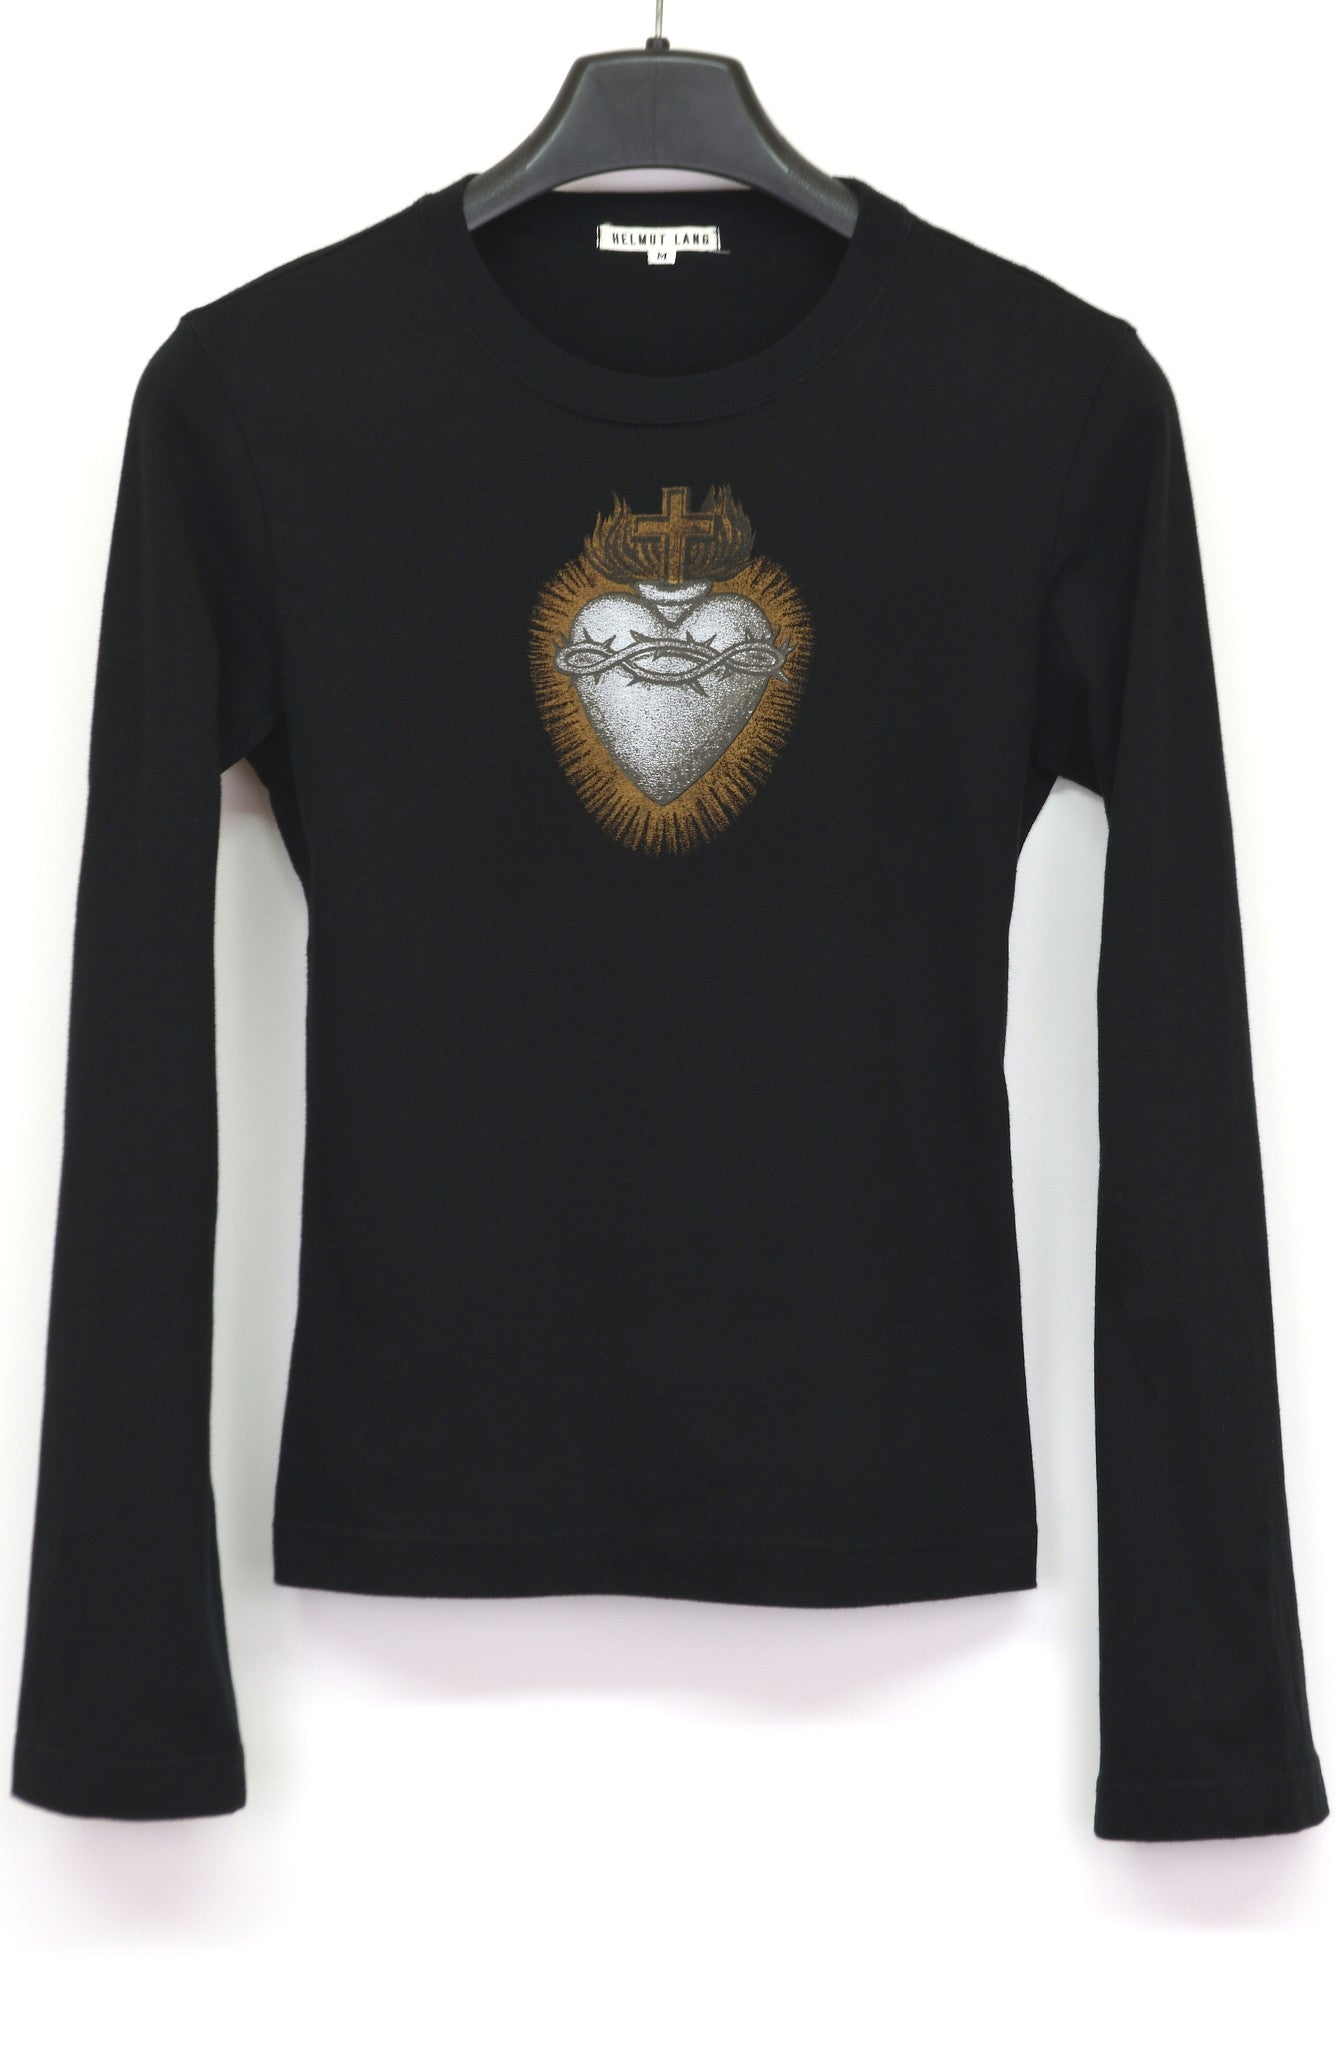 1993 Slim T-Shirt with Sacred Heart Print